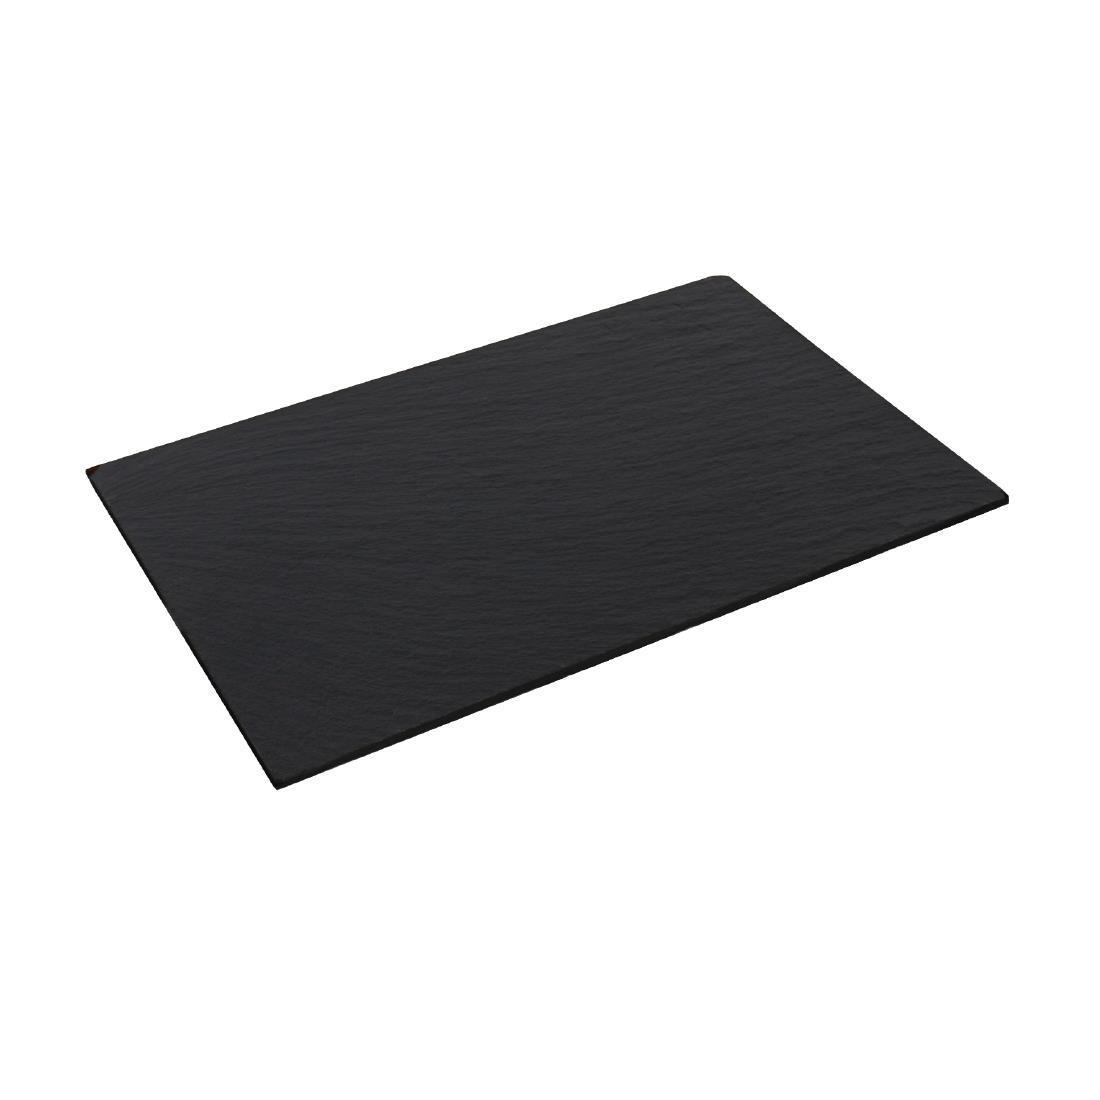 Olympia Smooth Edged Slate Platters 280 x 180mm